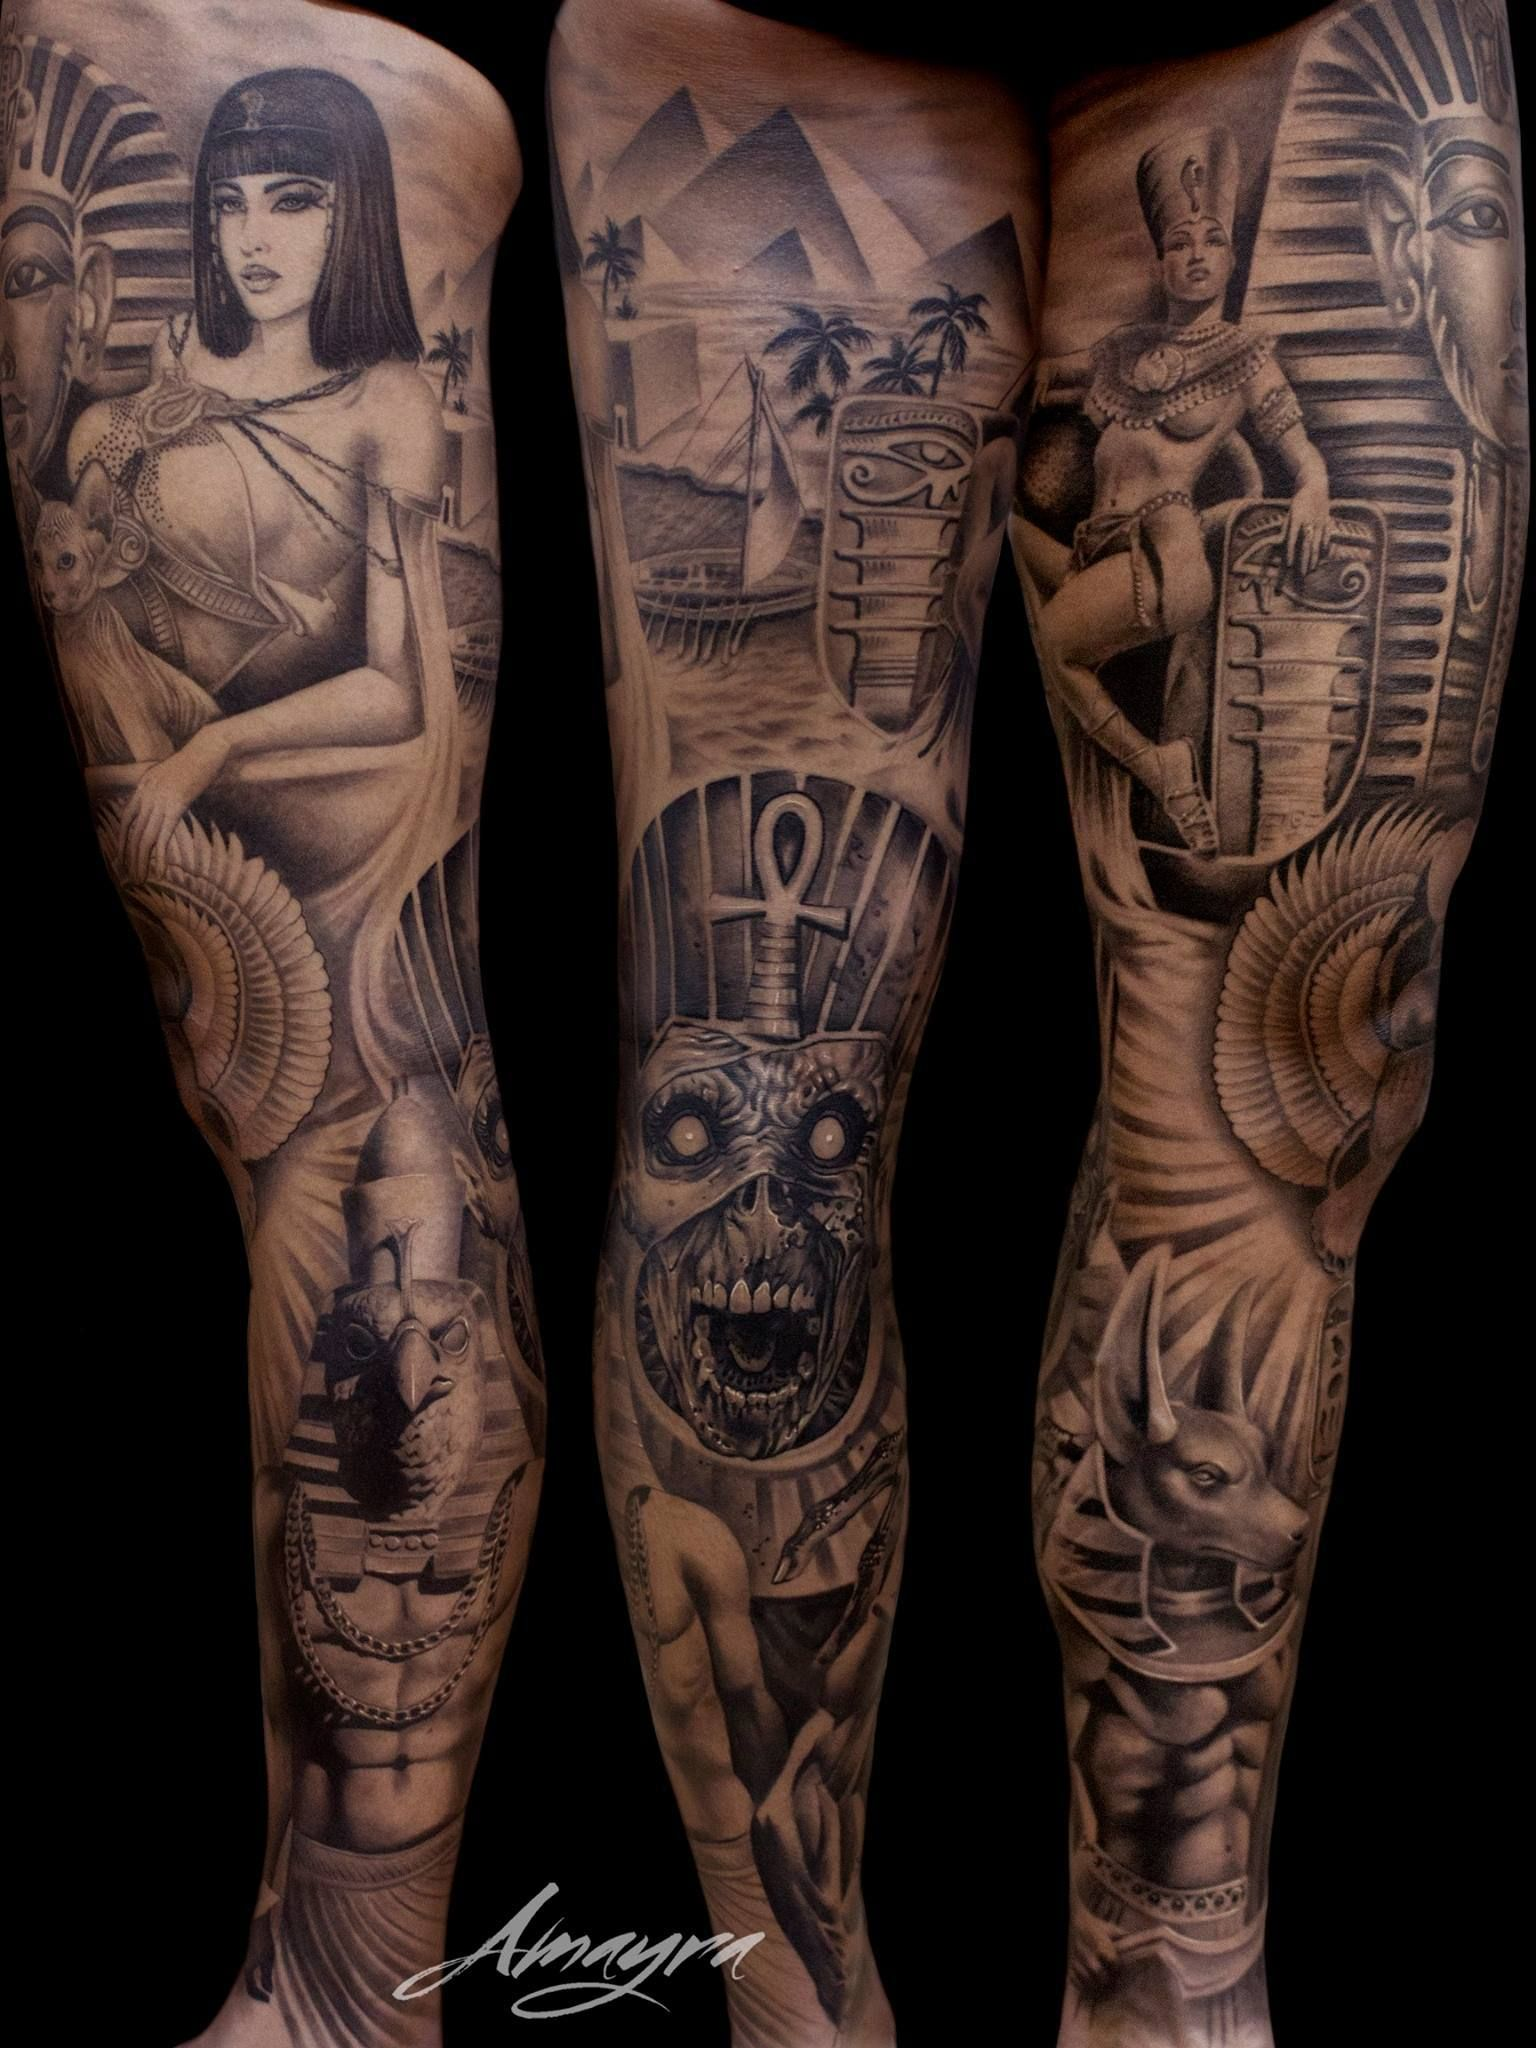 b48d69dc3 Pin by Taylor DeVore on Mad Ink | Tattoos, Egypt tattoo, Egyptian tattoo  sleeve